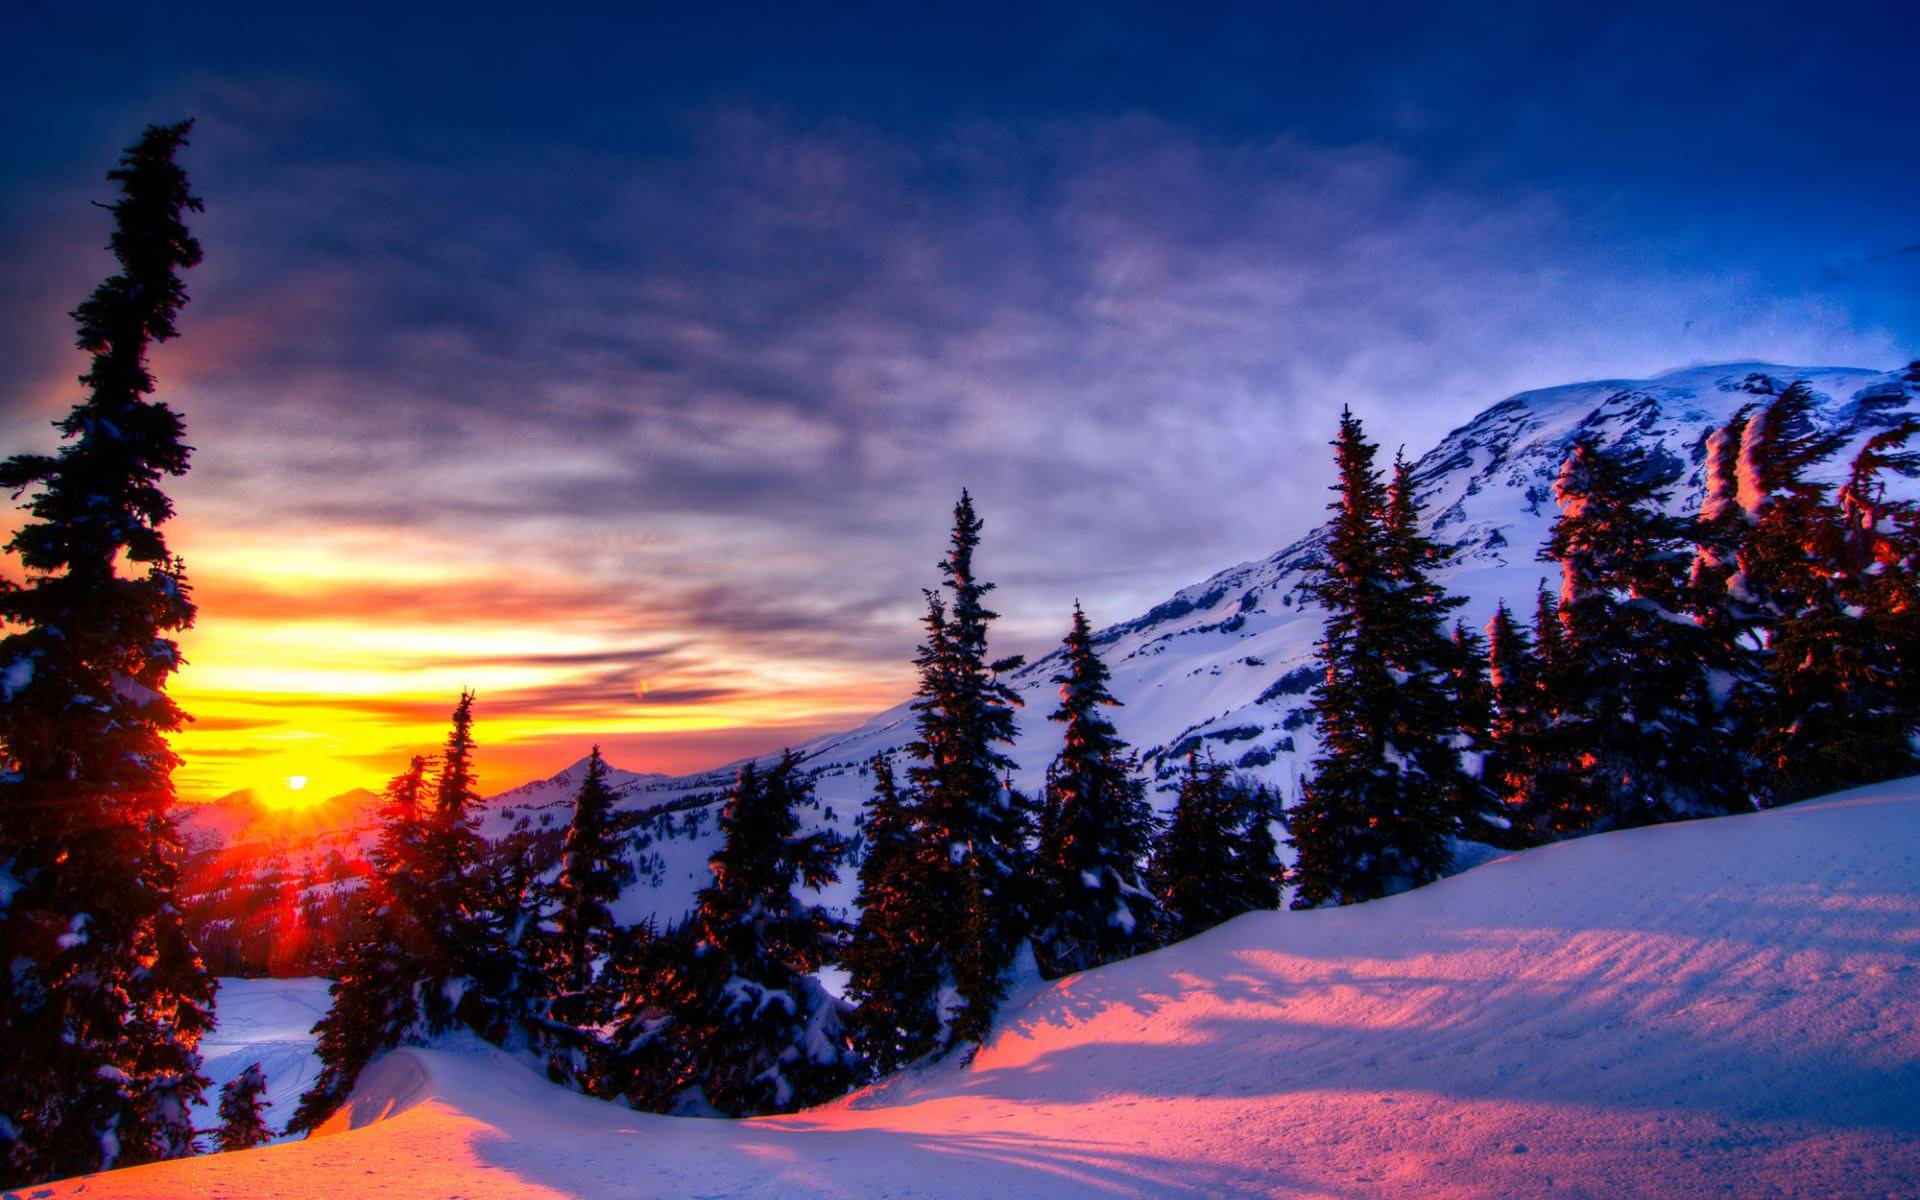 Sunrise in Snow Mountains Wallpaper